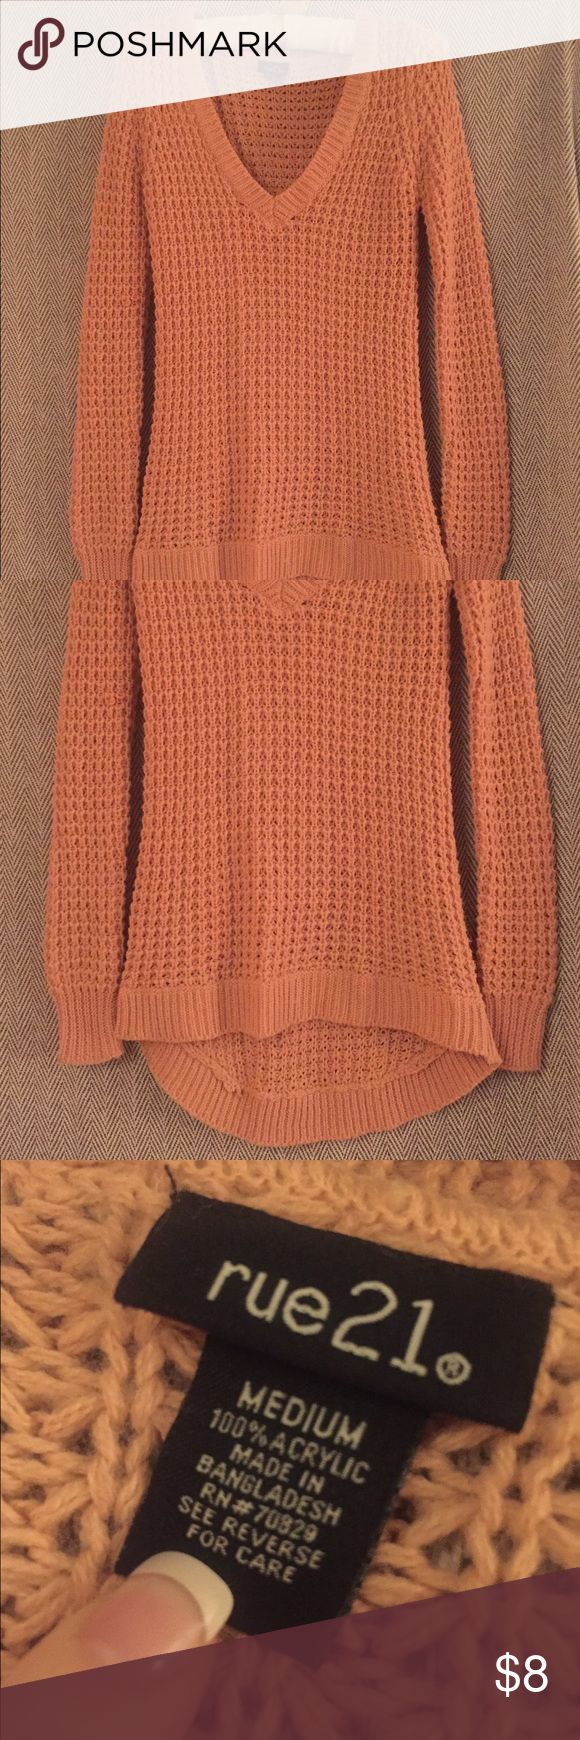 Coral knit sweater Cable knit sweater, good pre-owned condition, snug fit Rou 21 Sweaters V-Necks